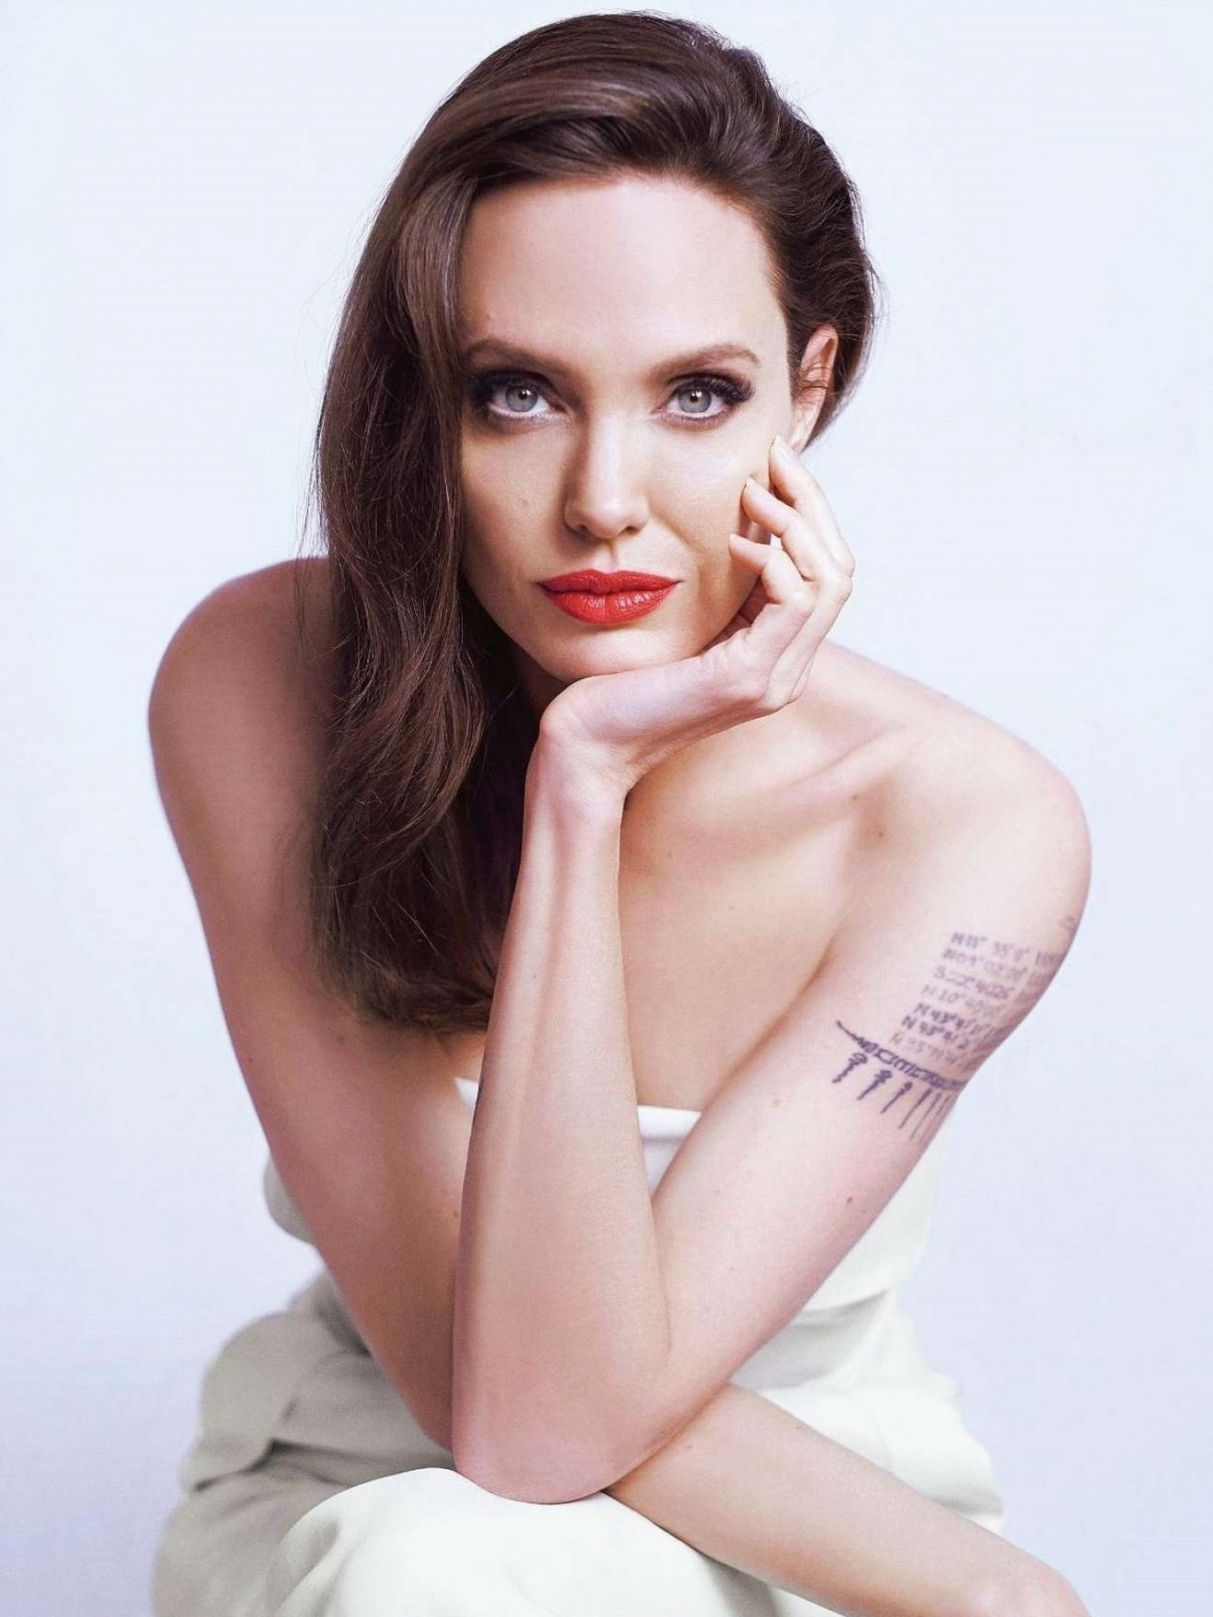 angelina-jolie-photoshoot-for-7191-6384-